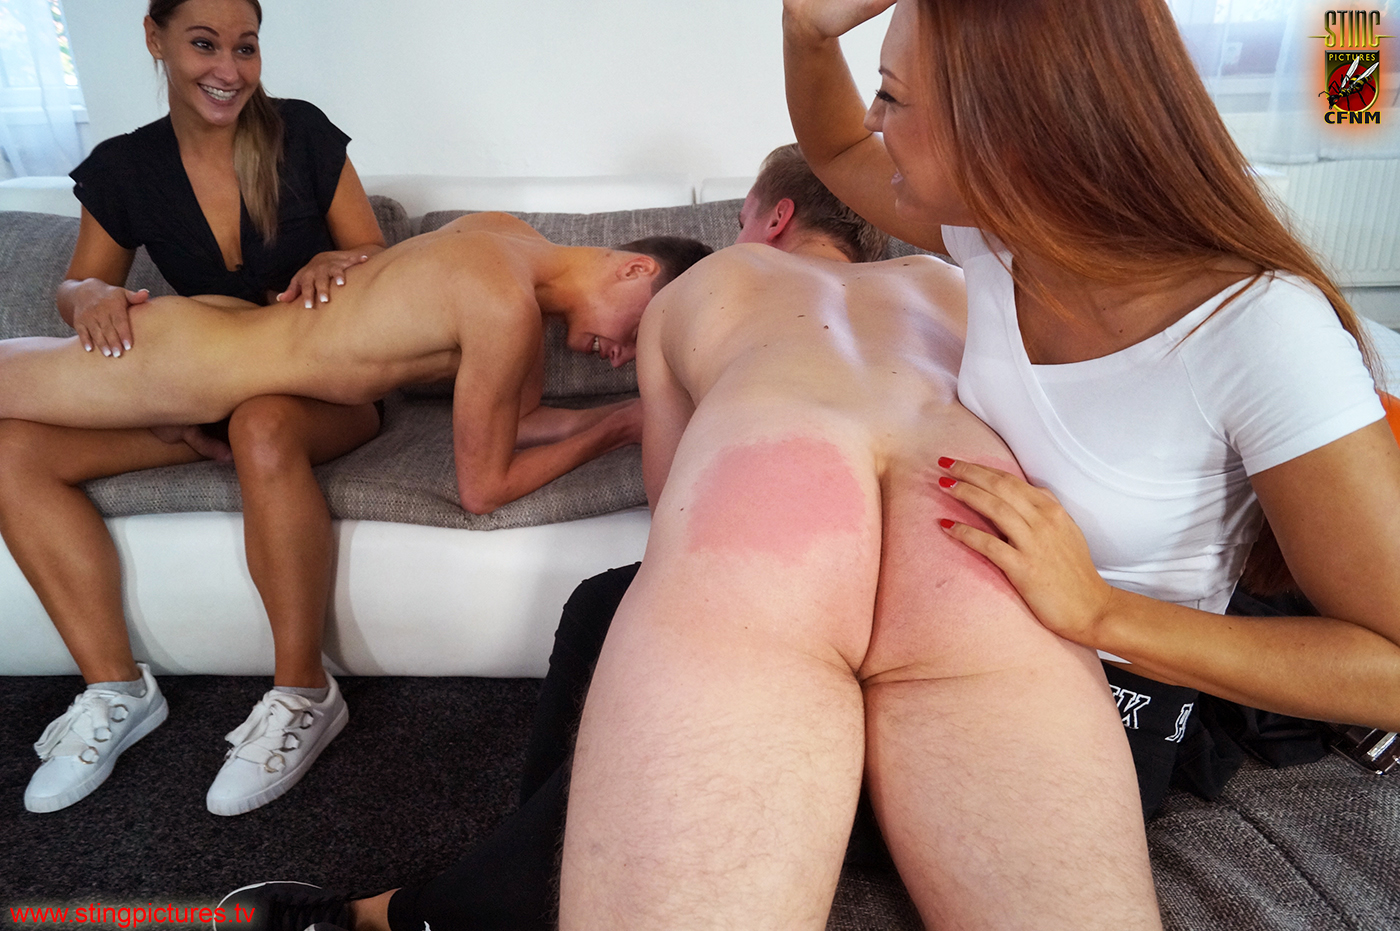 Think noelia fucked in the ass got HARD